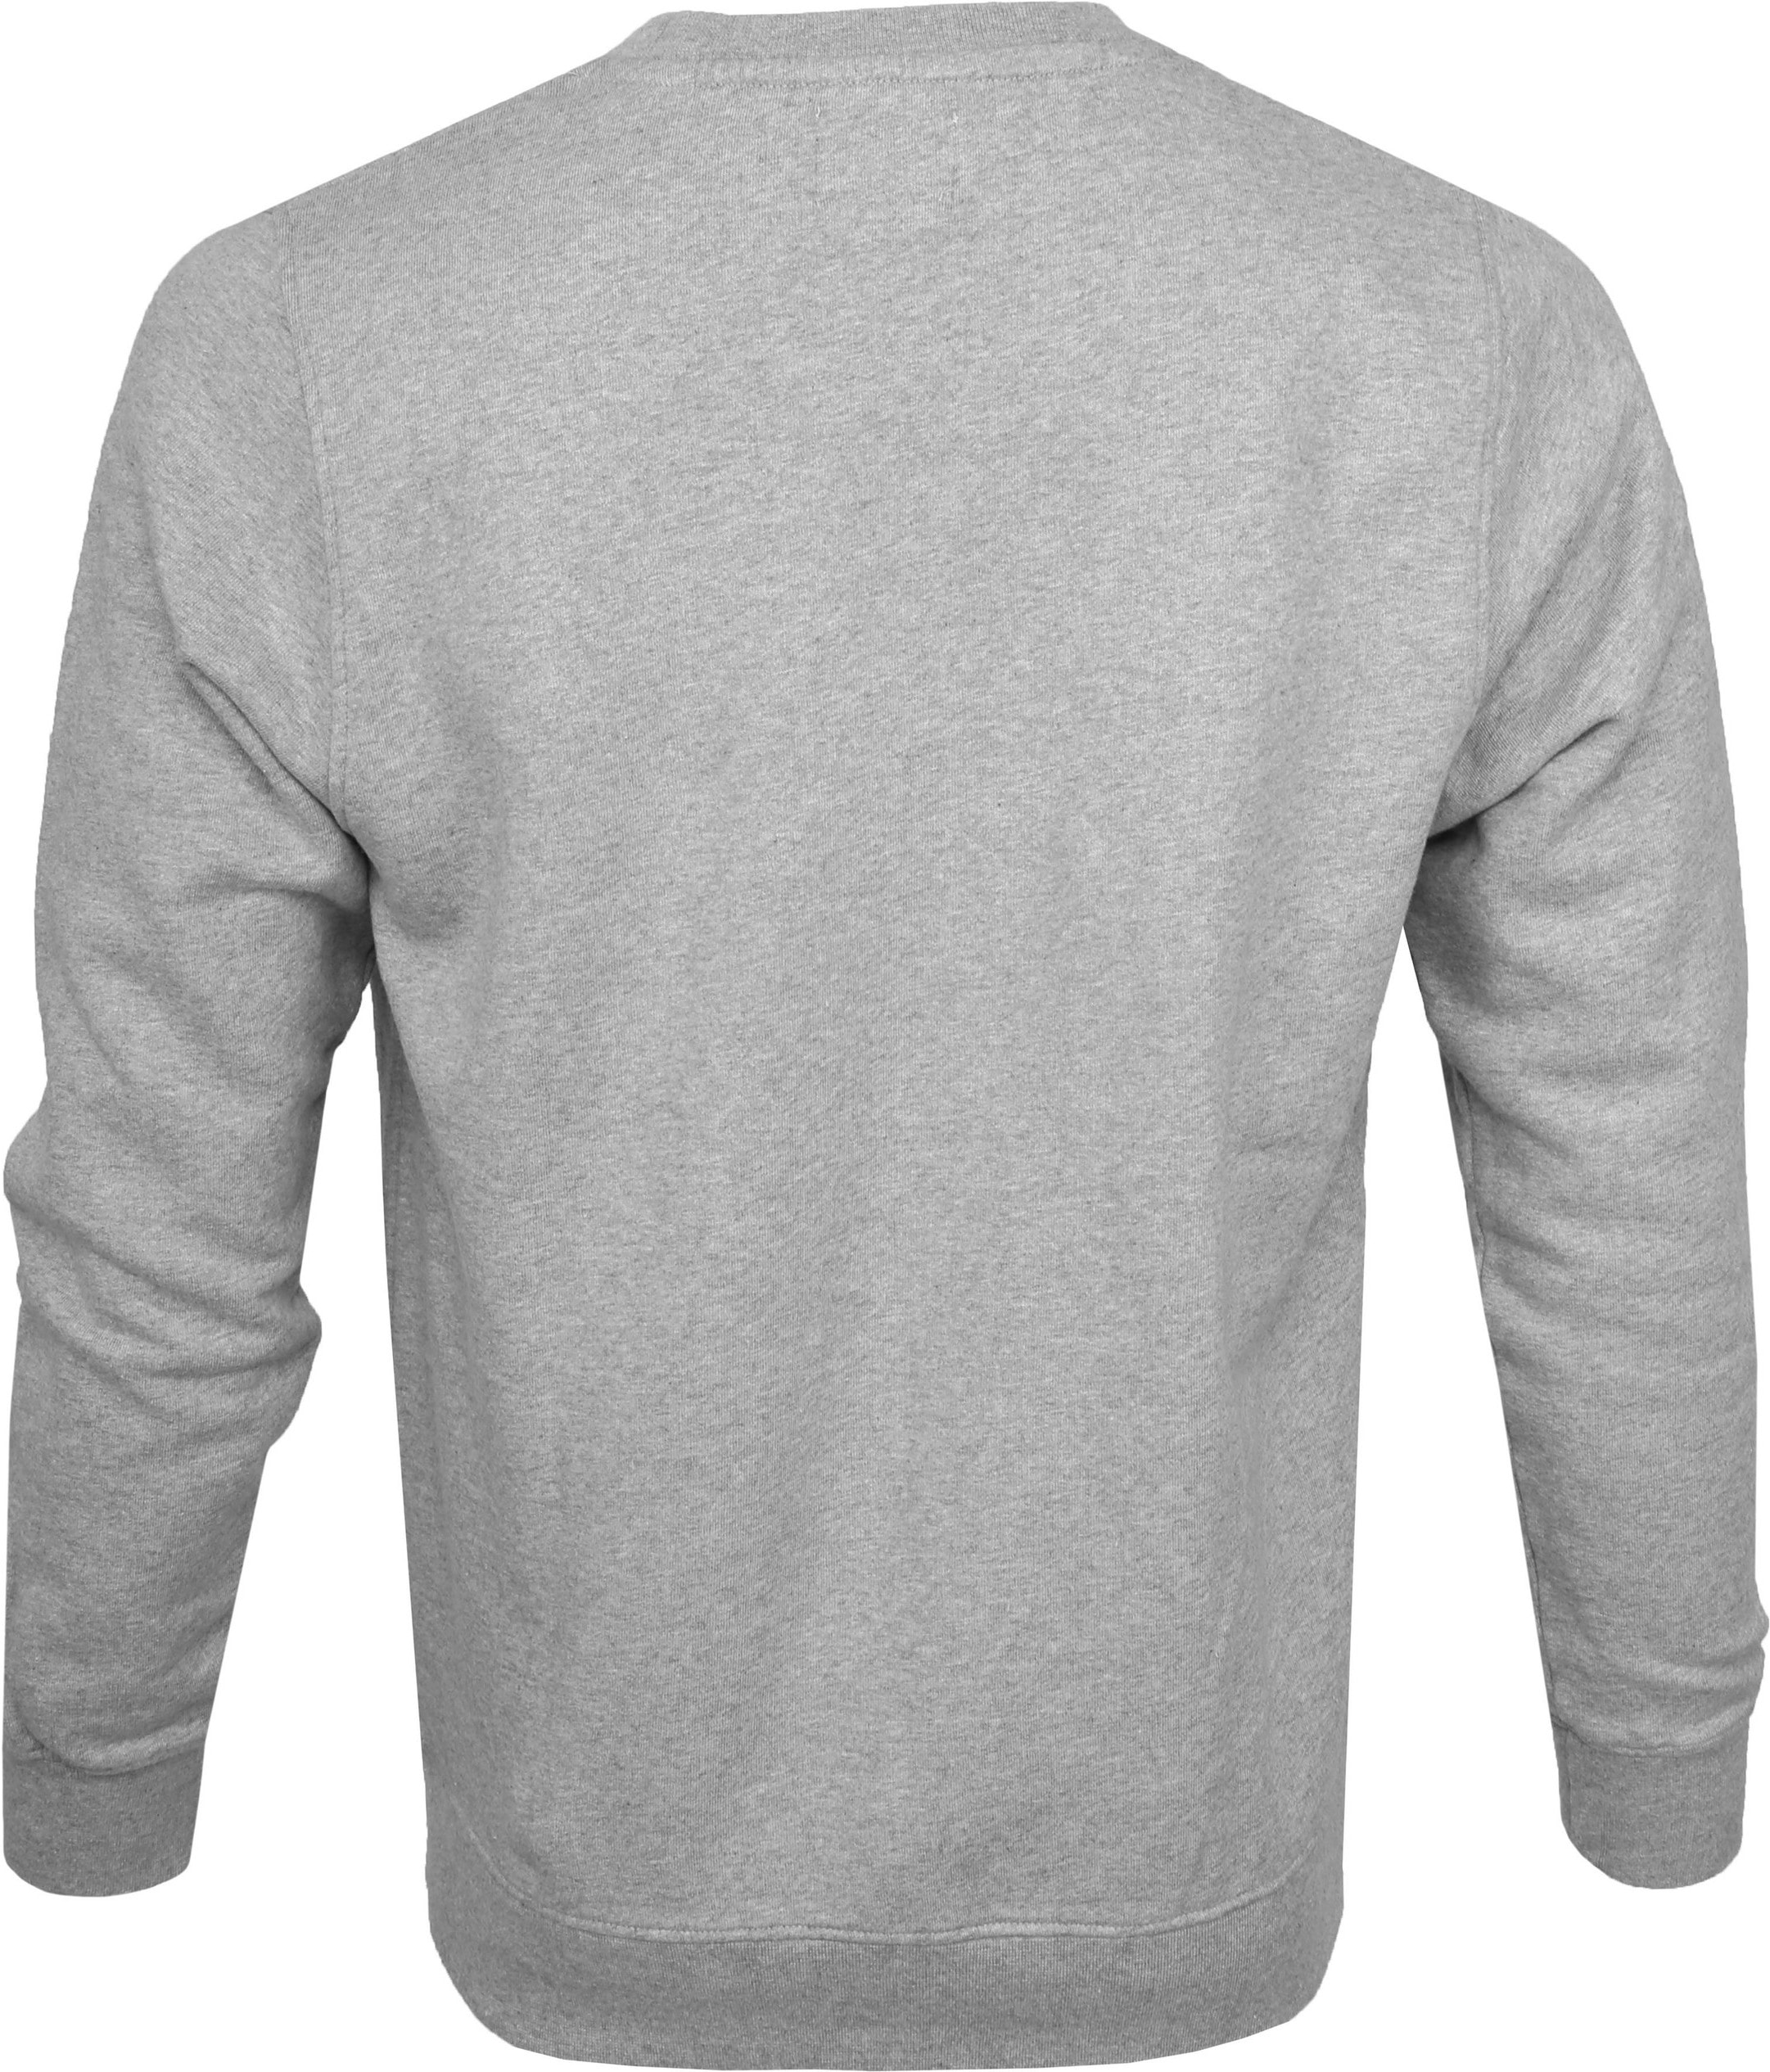 Colorful Standard Sweater Heather Grey foto 2